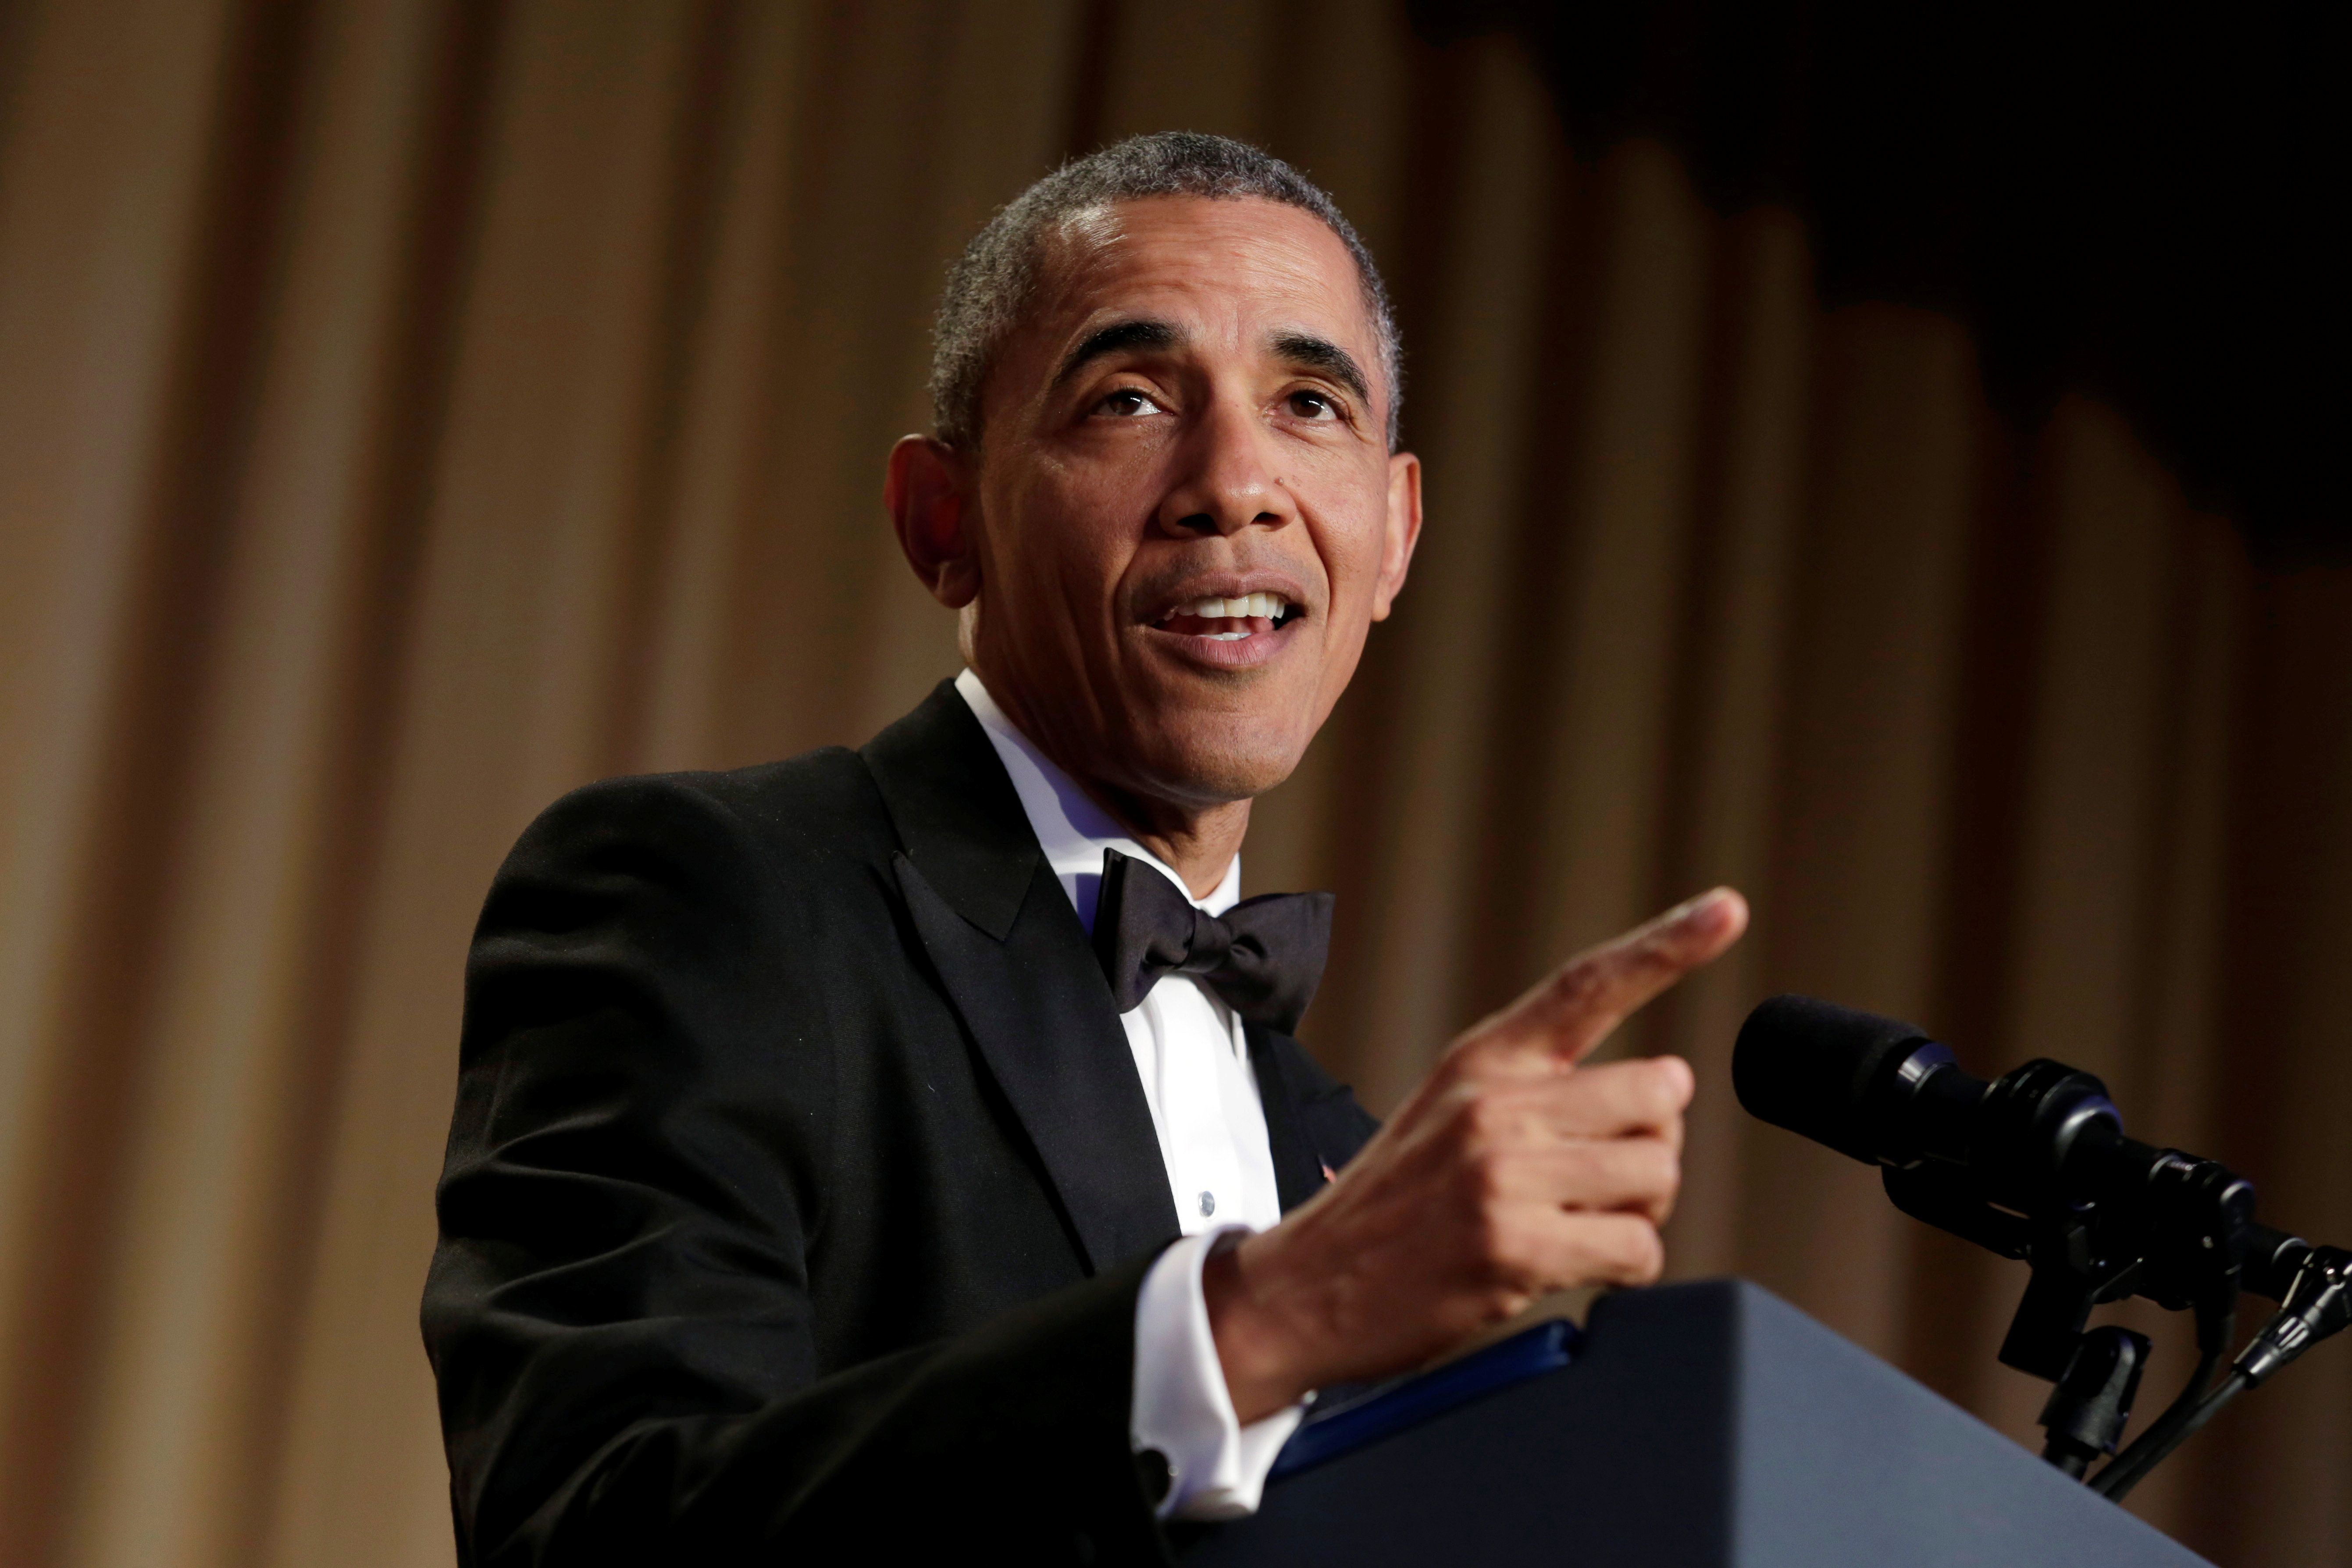 Obama Demands 'Respect' From Trump In Aretha Franklin Tribute Mashup